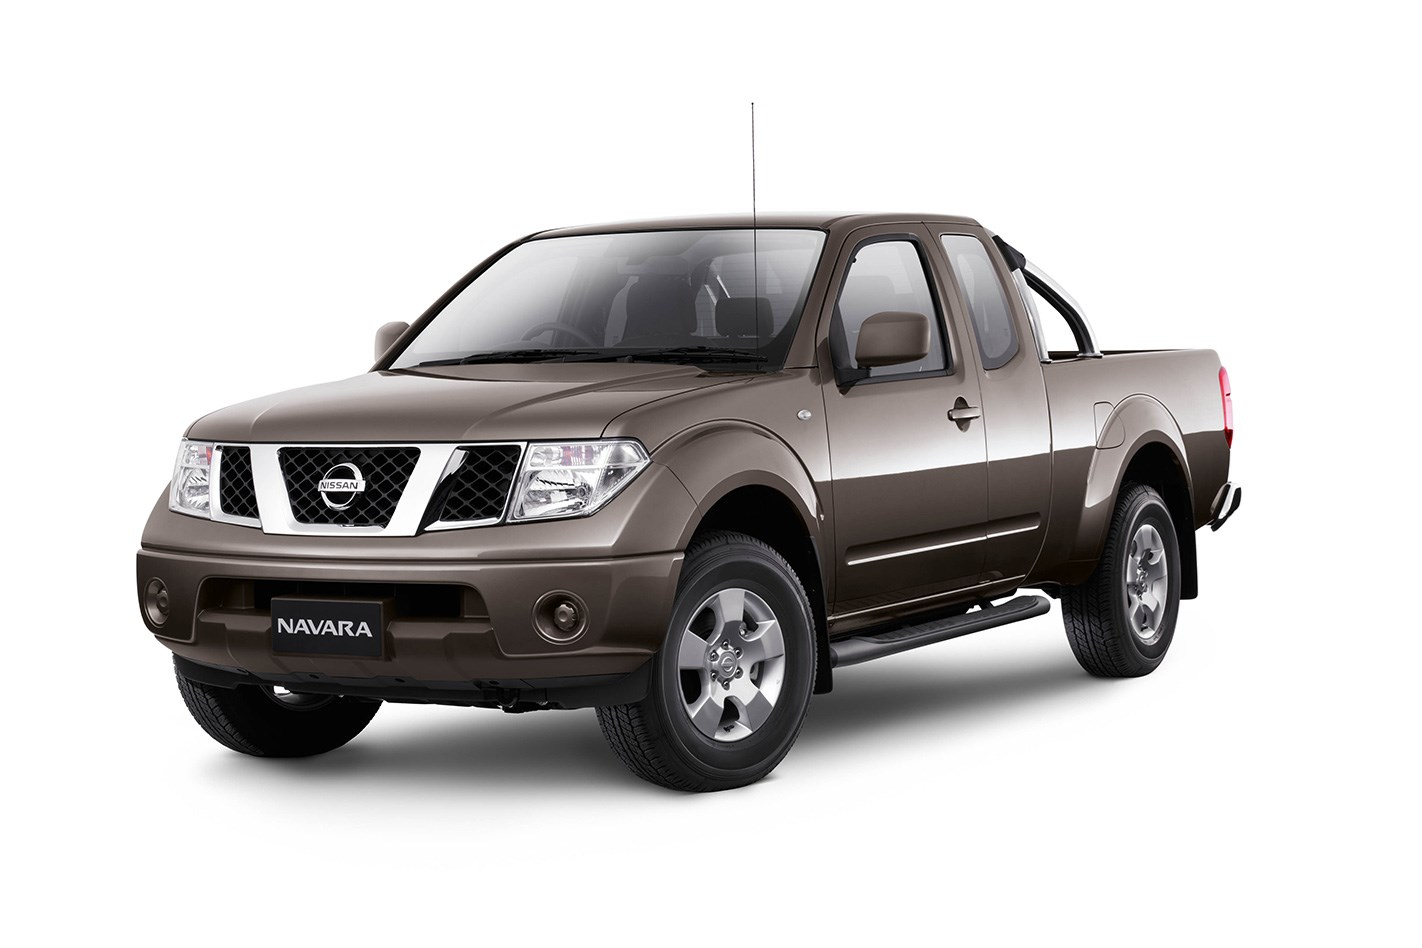 100 nissan navara 2006 interior nissan navara double cab 2010 nissan navara double cab. Black Bedroom Furniture Sets. Home Design Ideas